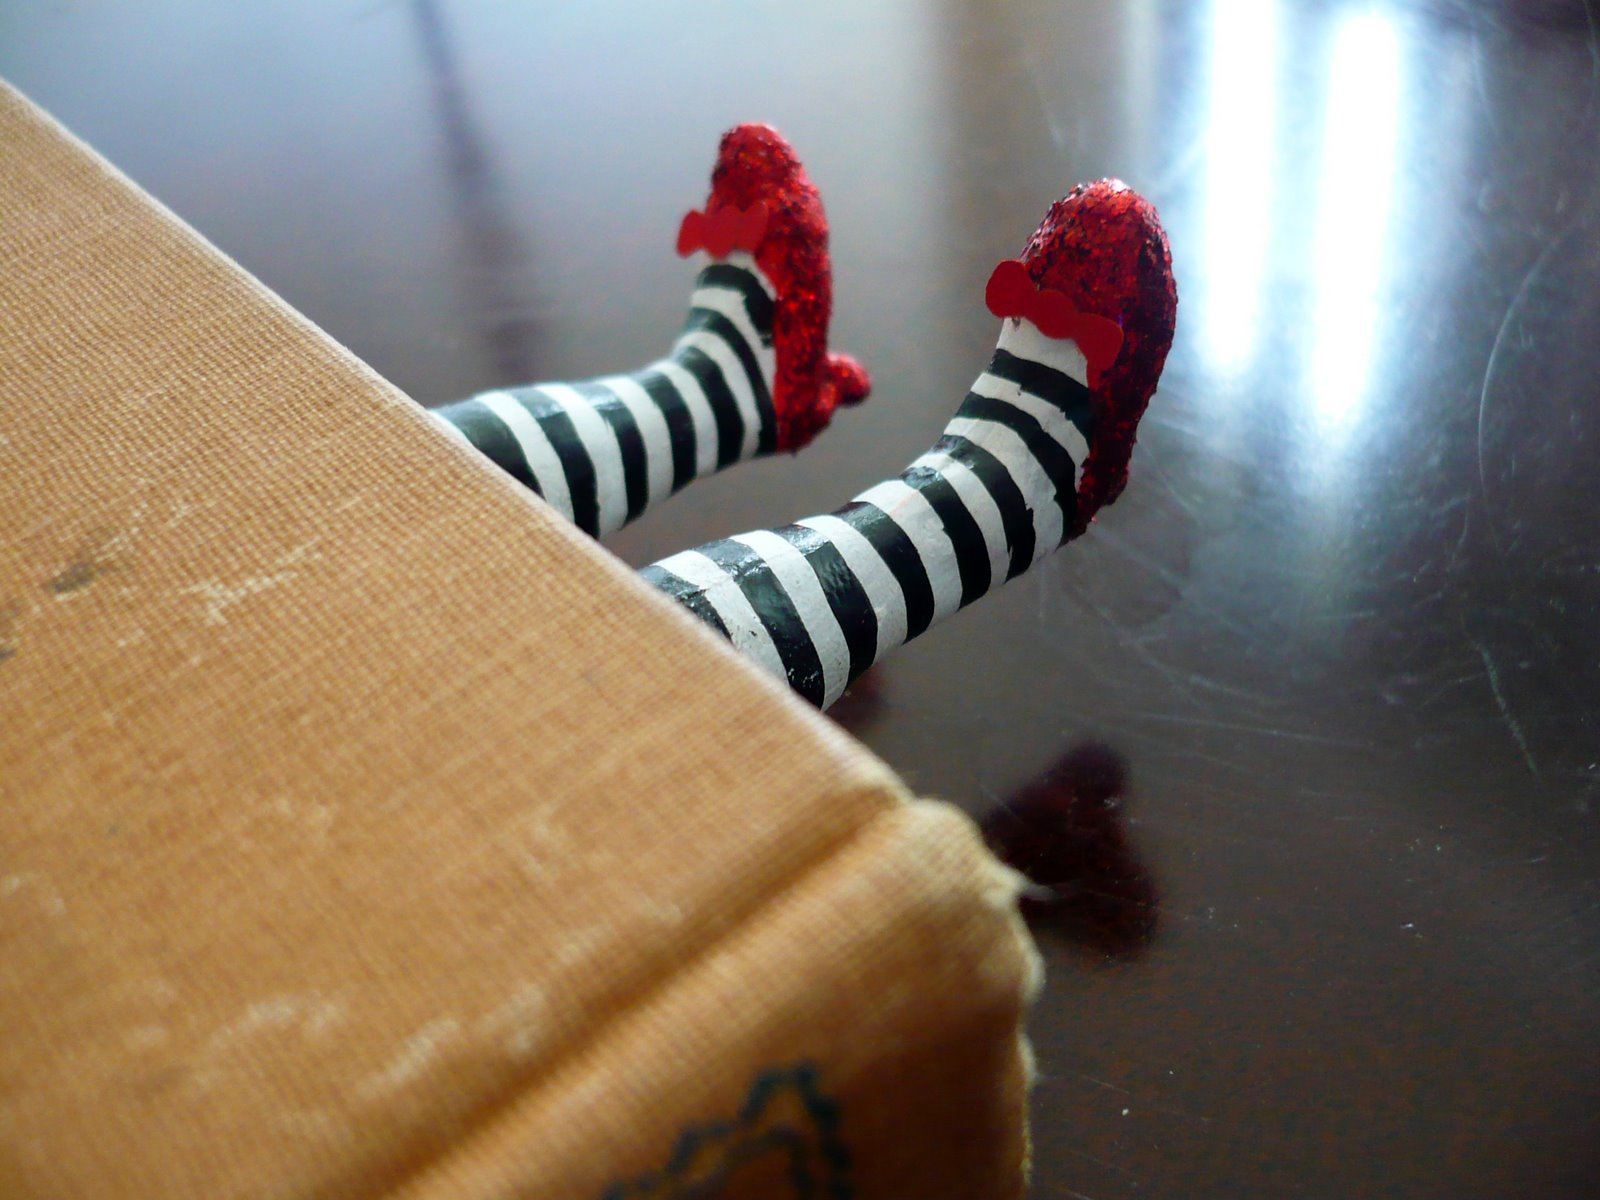 Wizard of oz ruby slippers - TheFind